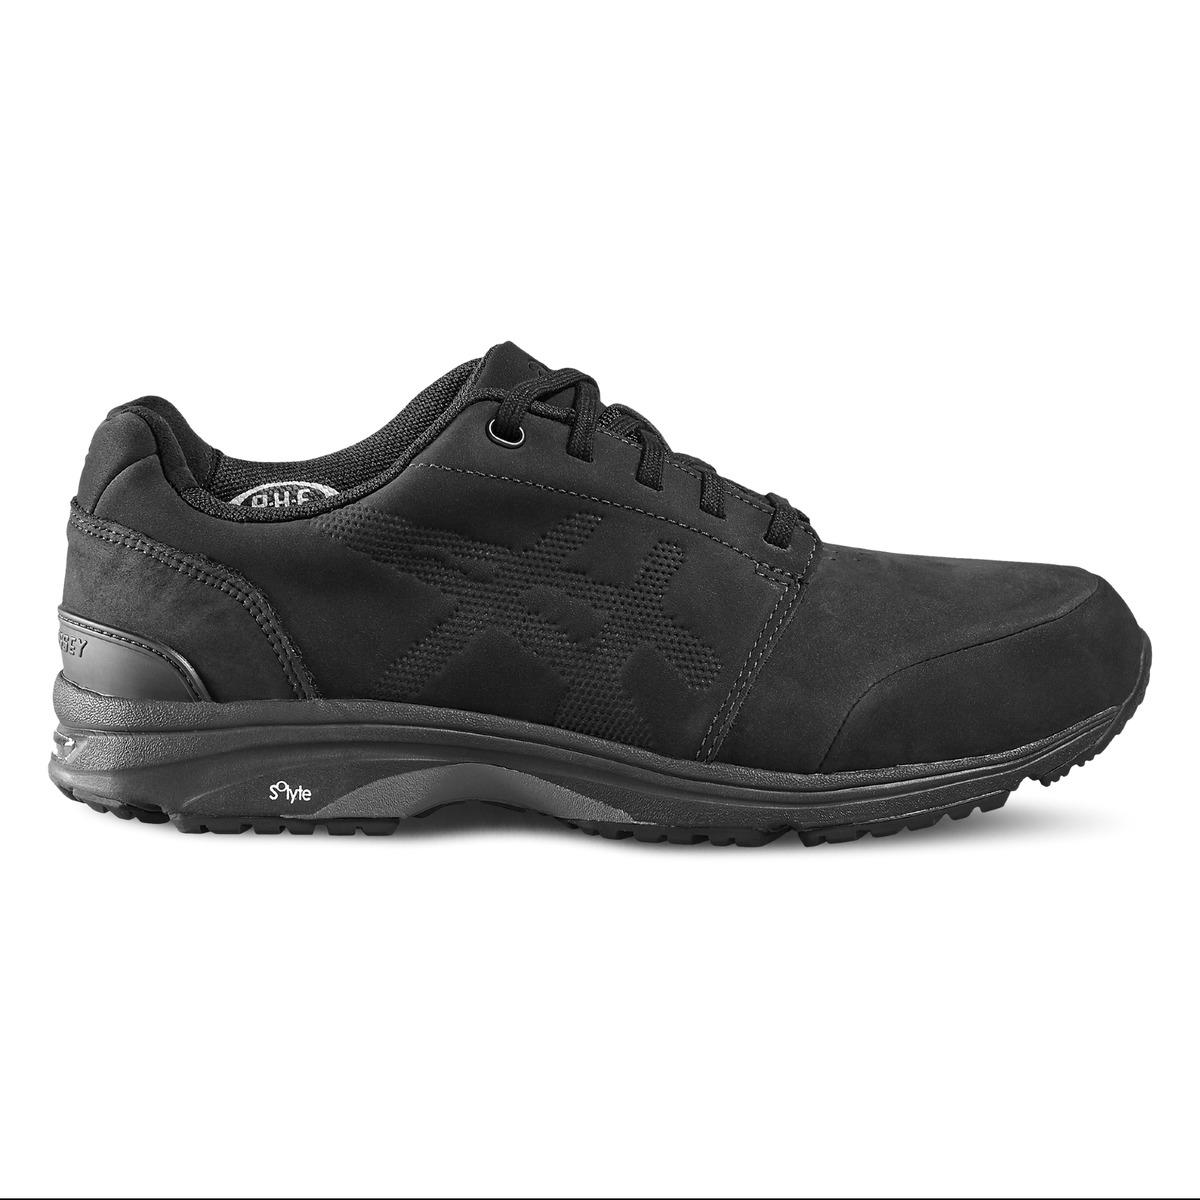 Search For Flights Asics Gel Odyssey WR Mens Walking Shoes